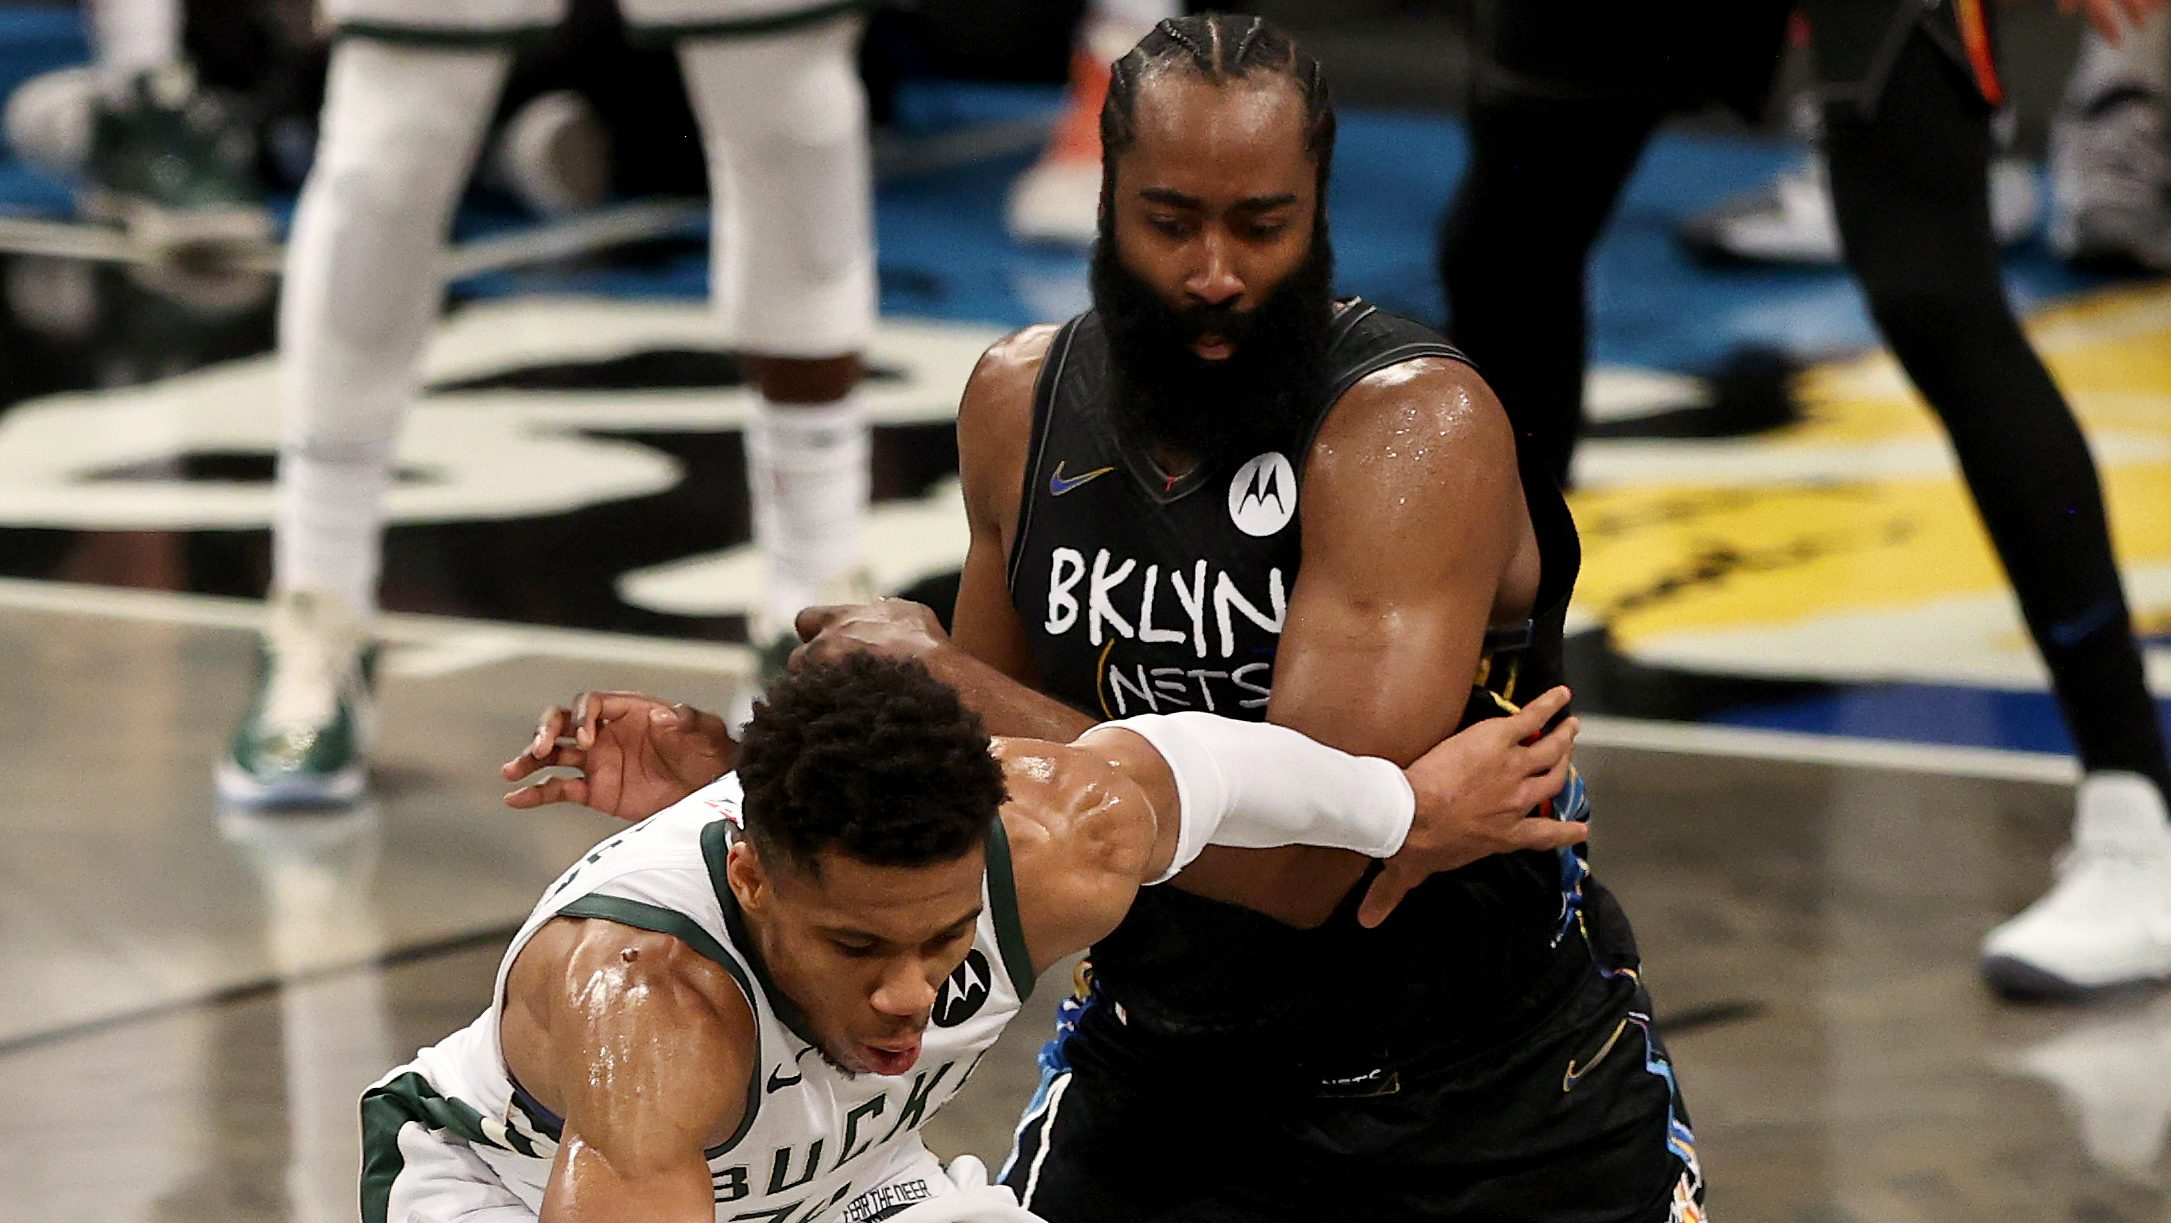 James Harden Is Fed up With Giannis Antetokounmpo - Heavy.com